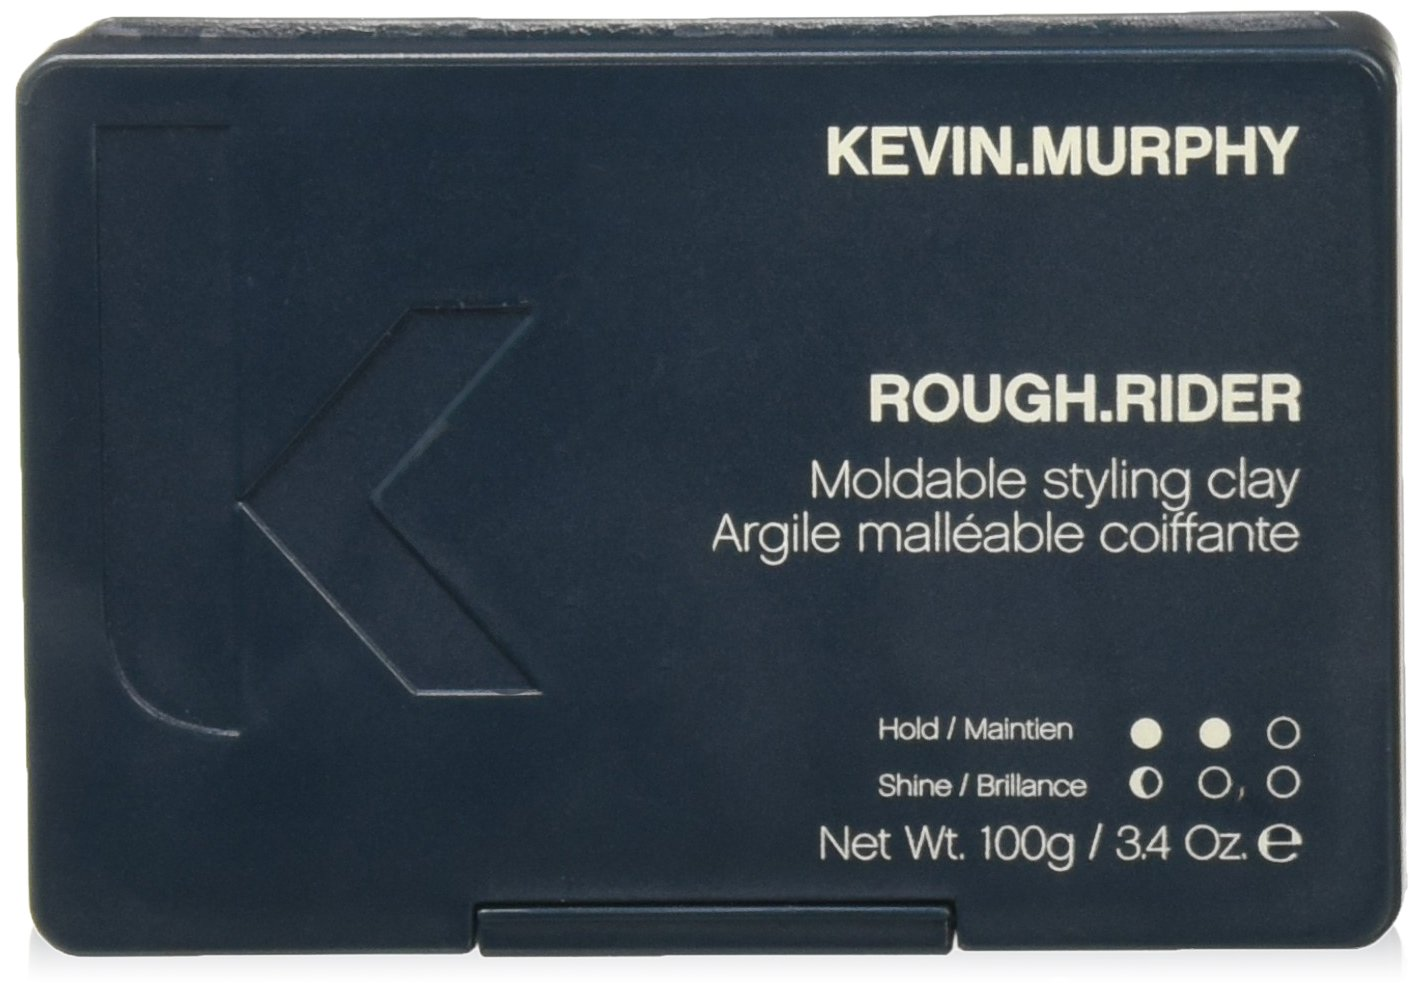 Kevin Murphy Rough Rider Clay, 3.4 Ounce, U-HC-10057 KMU248